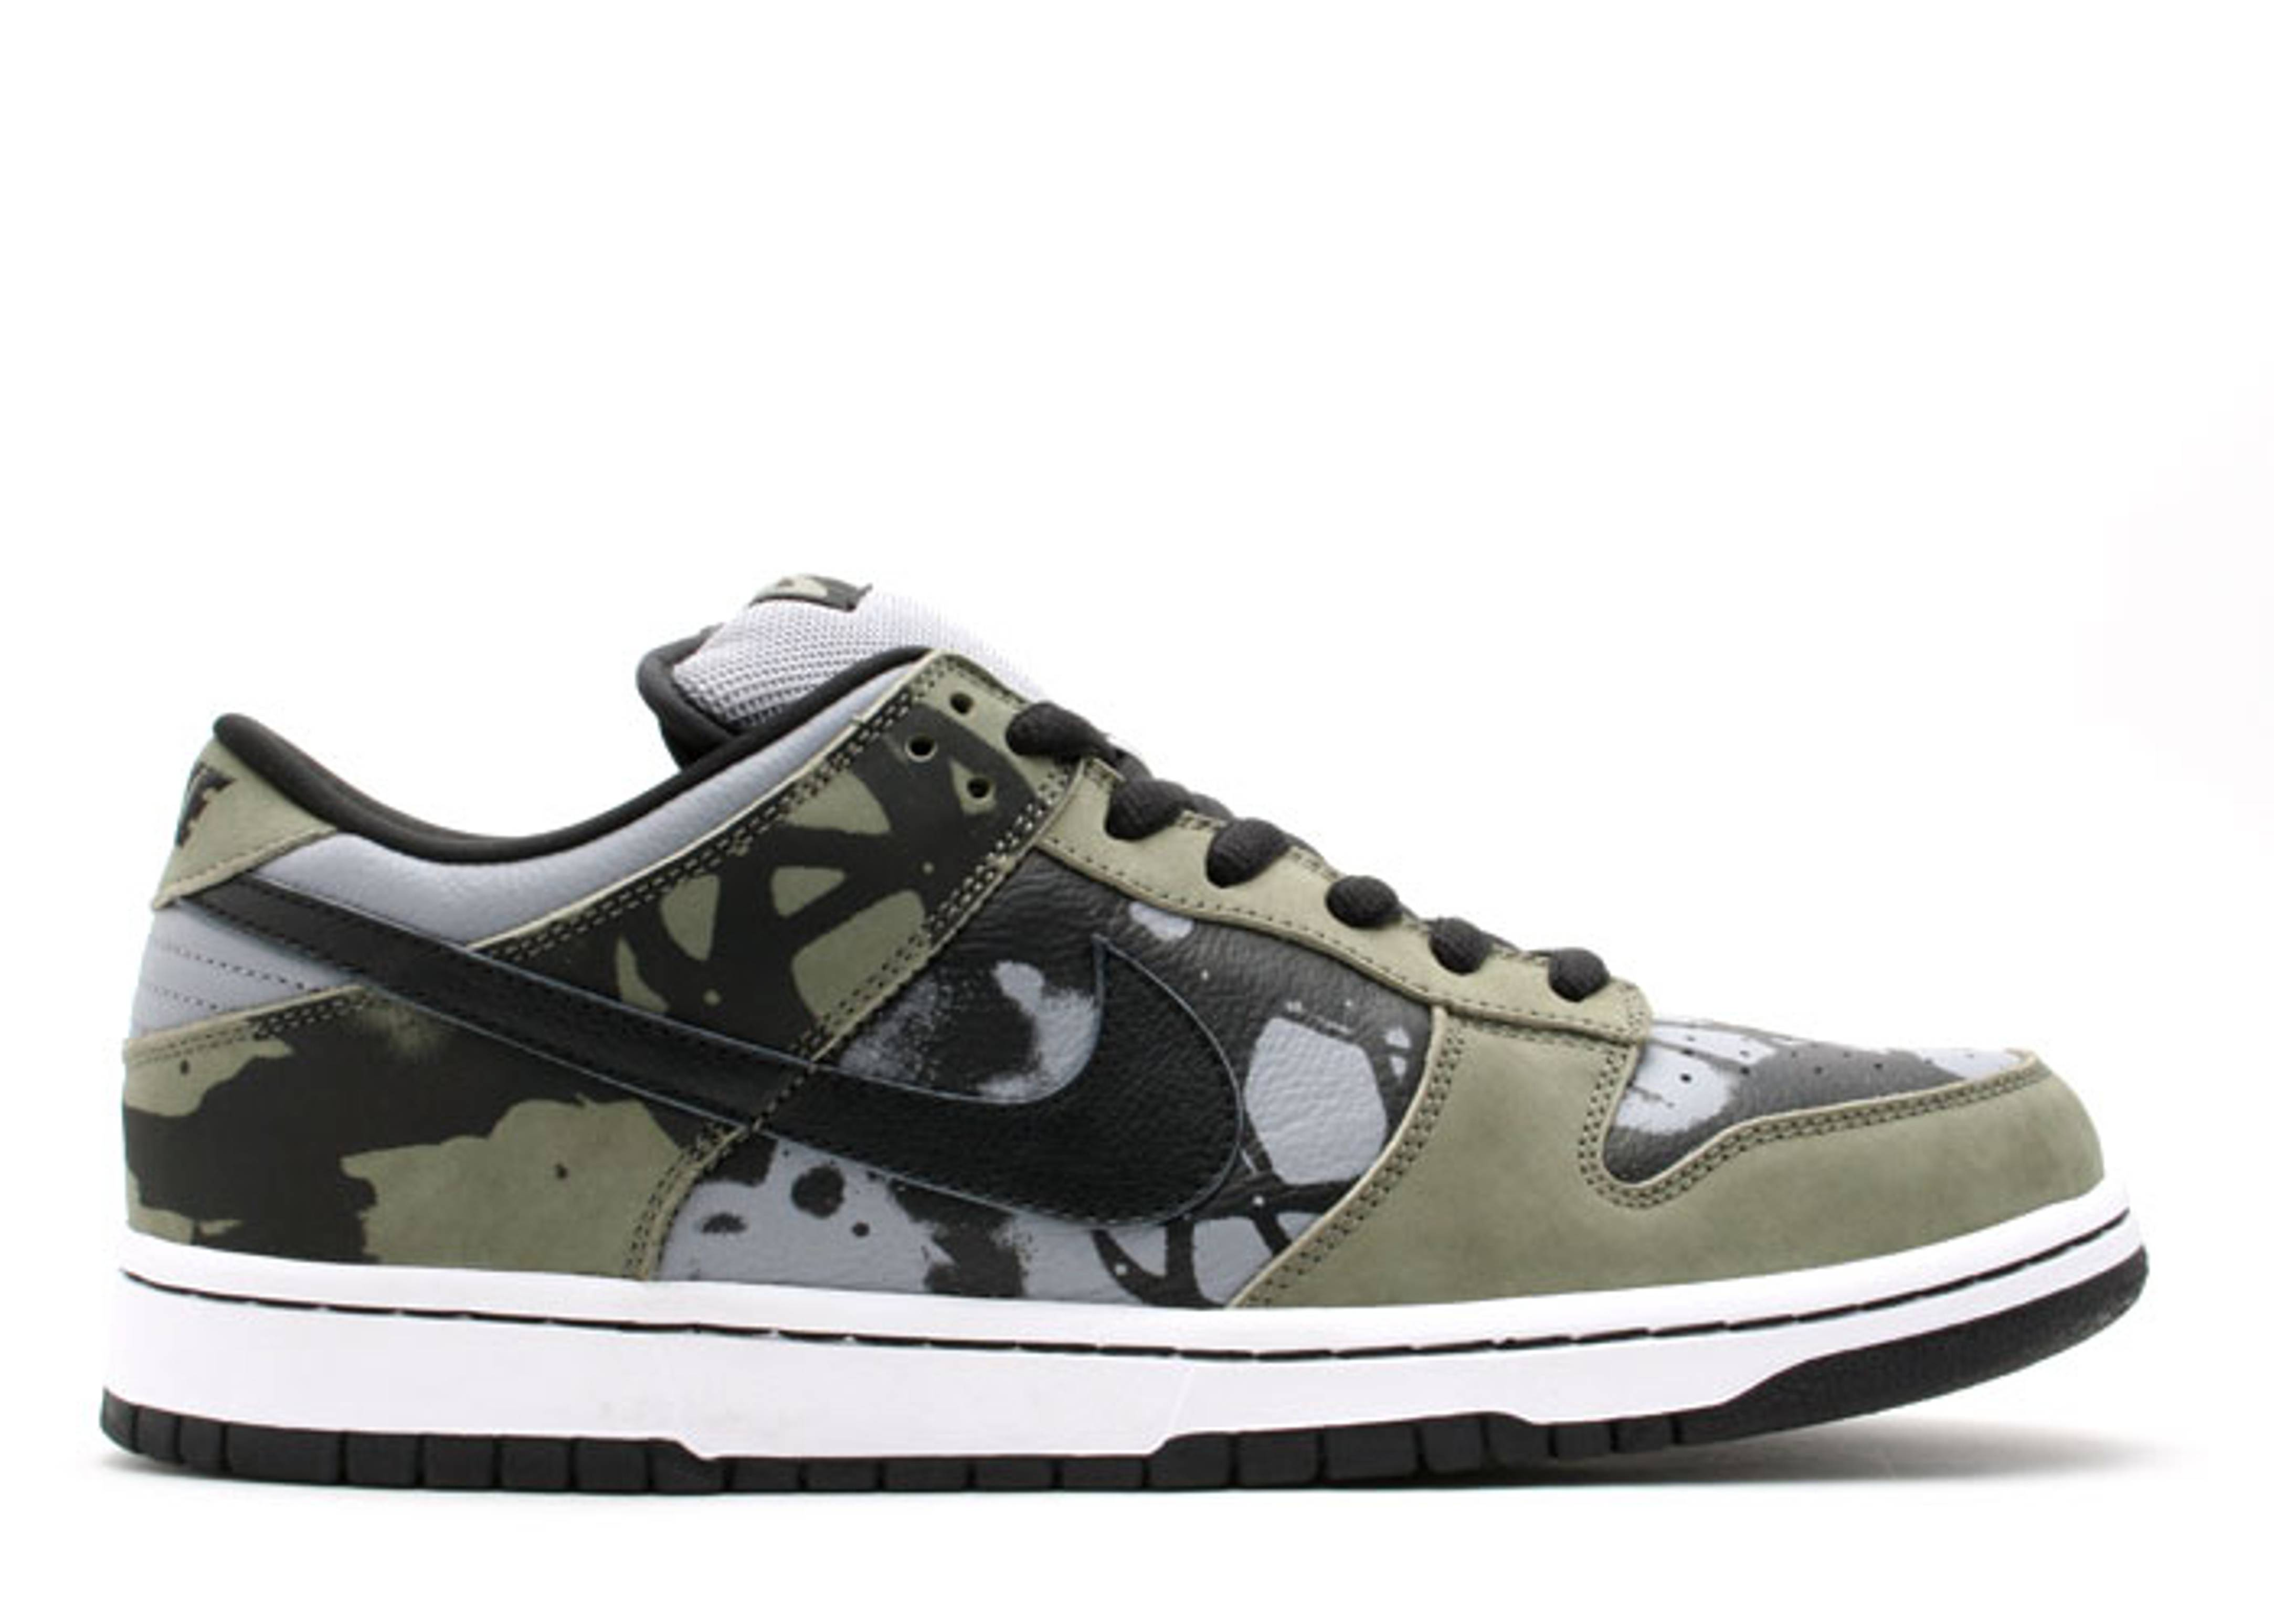 sneakers for cheap f87e2 08f6b Unkle Dunk Low Pro Sb - Nike - 1012 - flint grey/anthracite ...